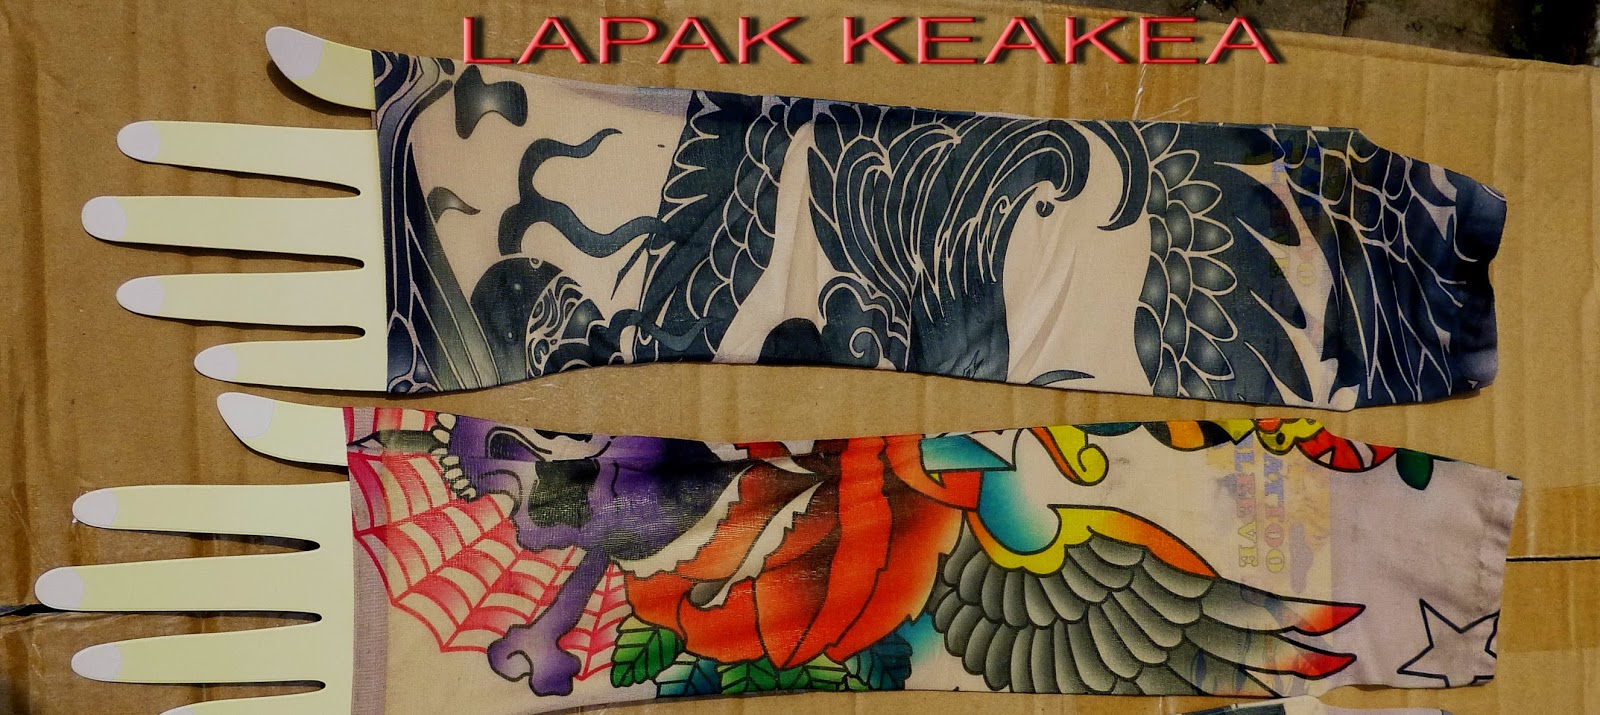 http://lapakkeakea.blogspot.com/search/label/sarung%20lengan%20tattoo%20type%20B